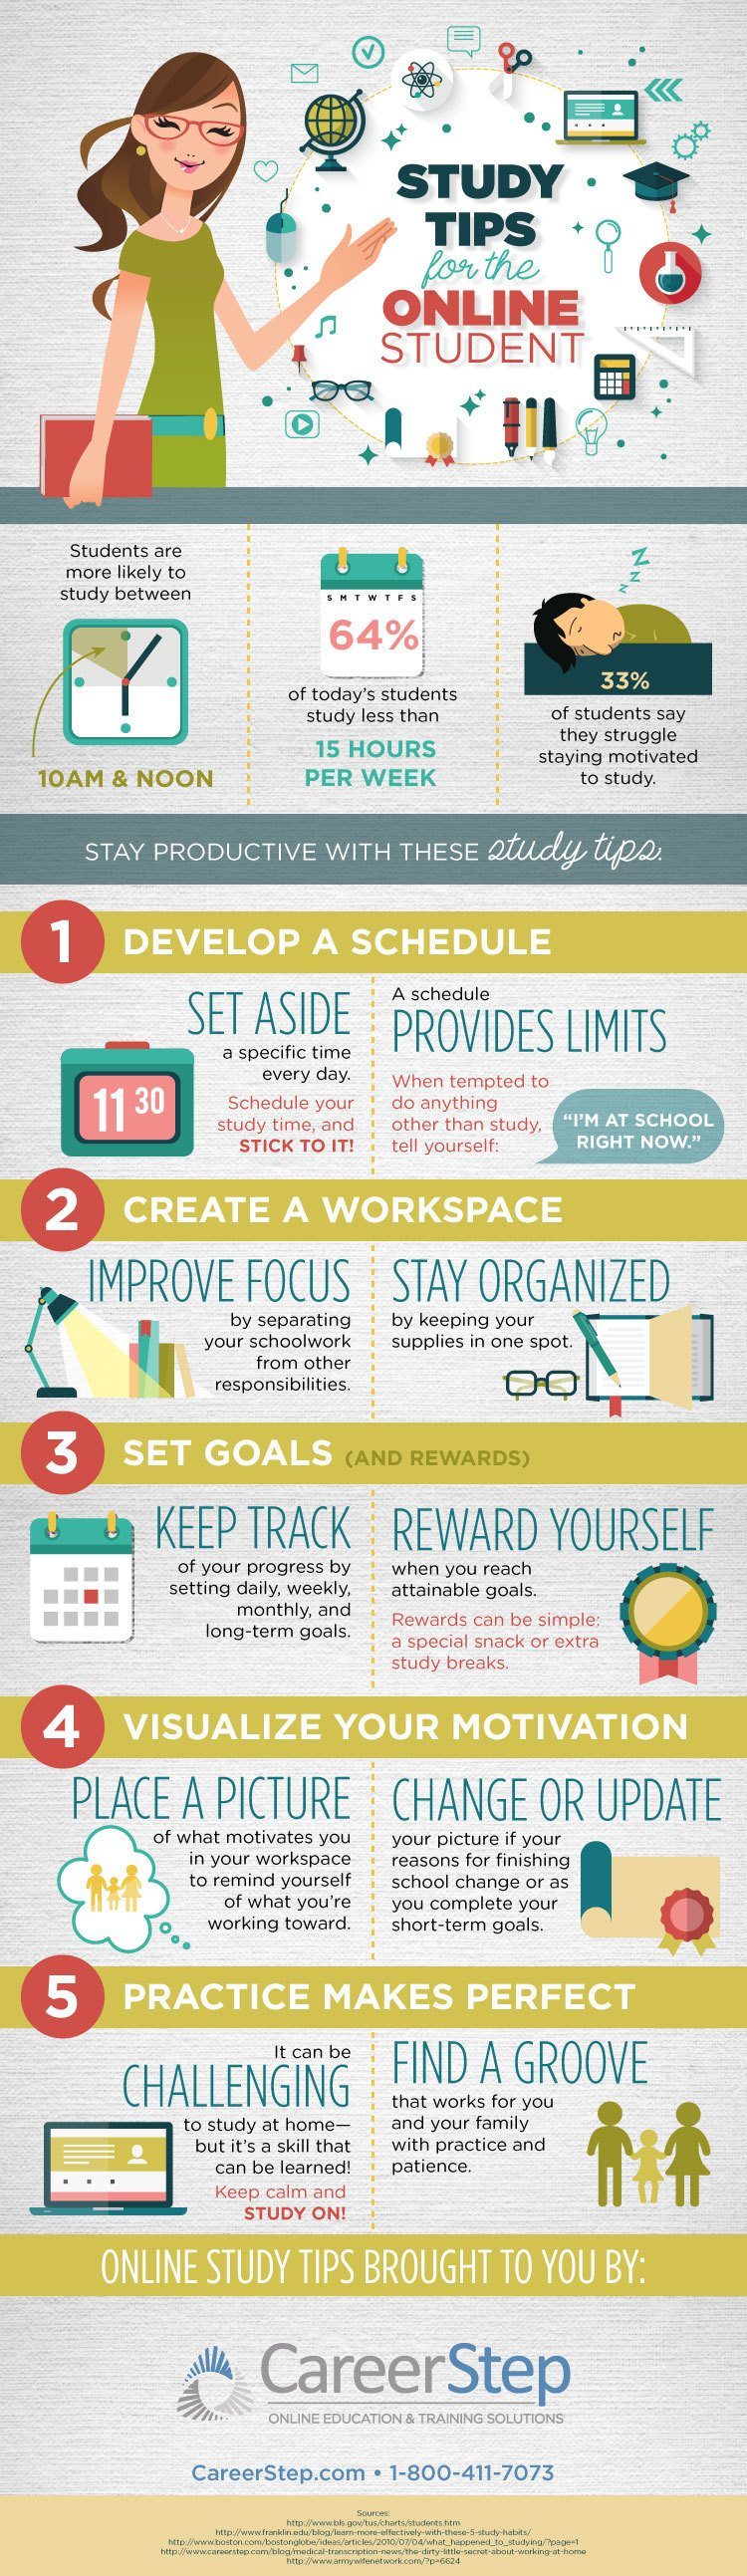 5 Great Study Tips For Online Students Infographic